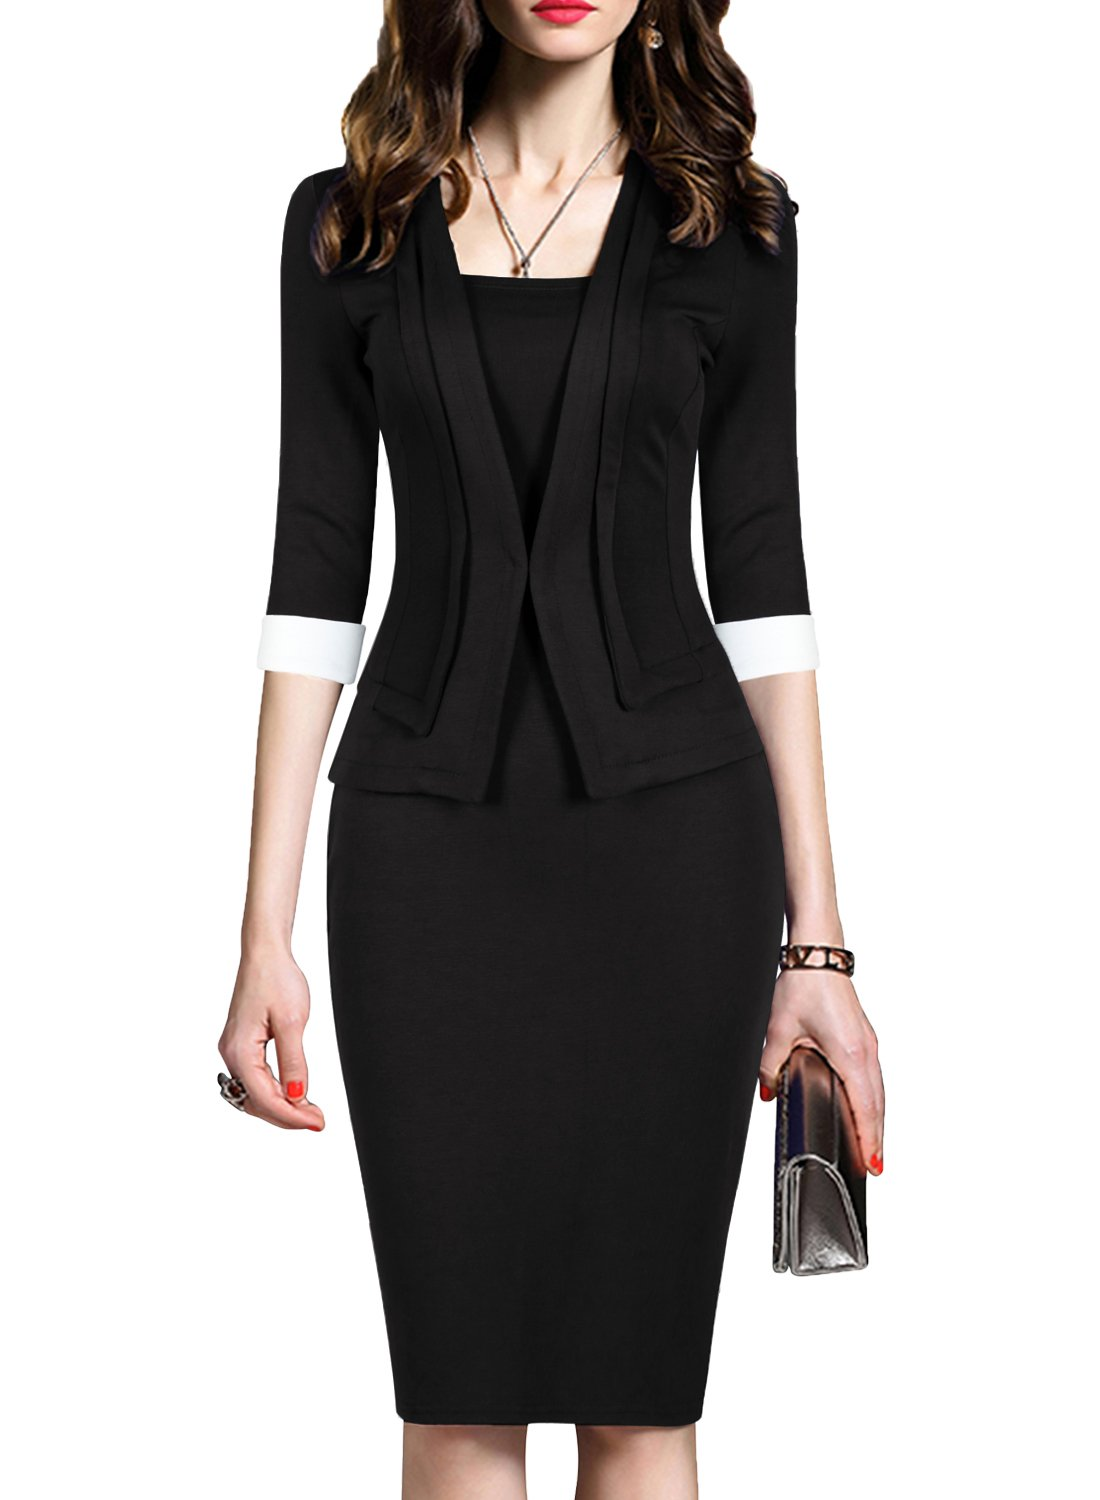 WOOSEA Women's 2/3 Sleeve Colorblock Slim Bodycon Business Pencil One-Piece Dress